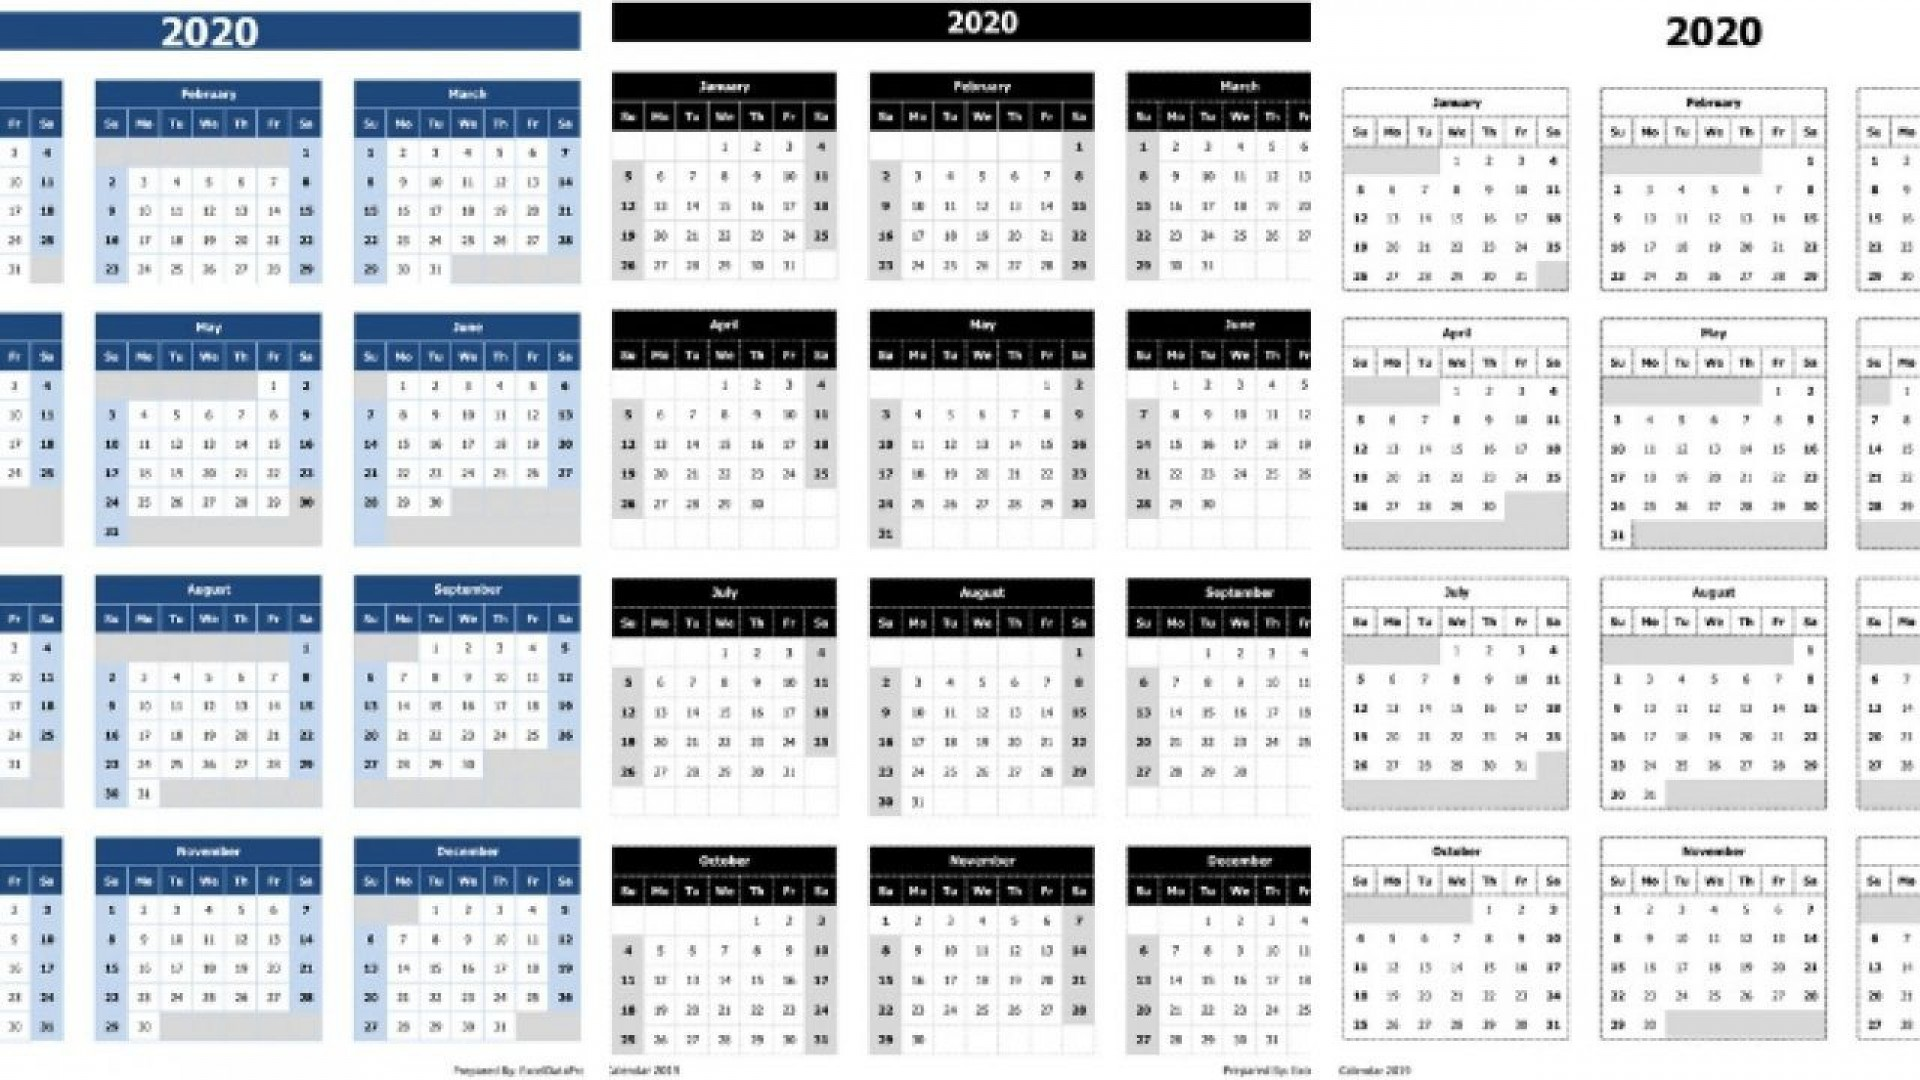 003 Sensational 2020 Calendar Template Excel Highest Quality  Microsoft Editable In Format Free Download1920